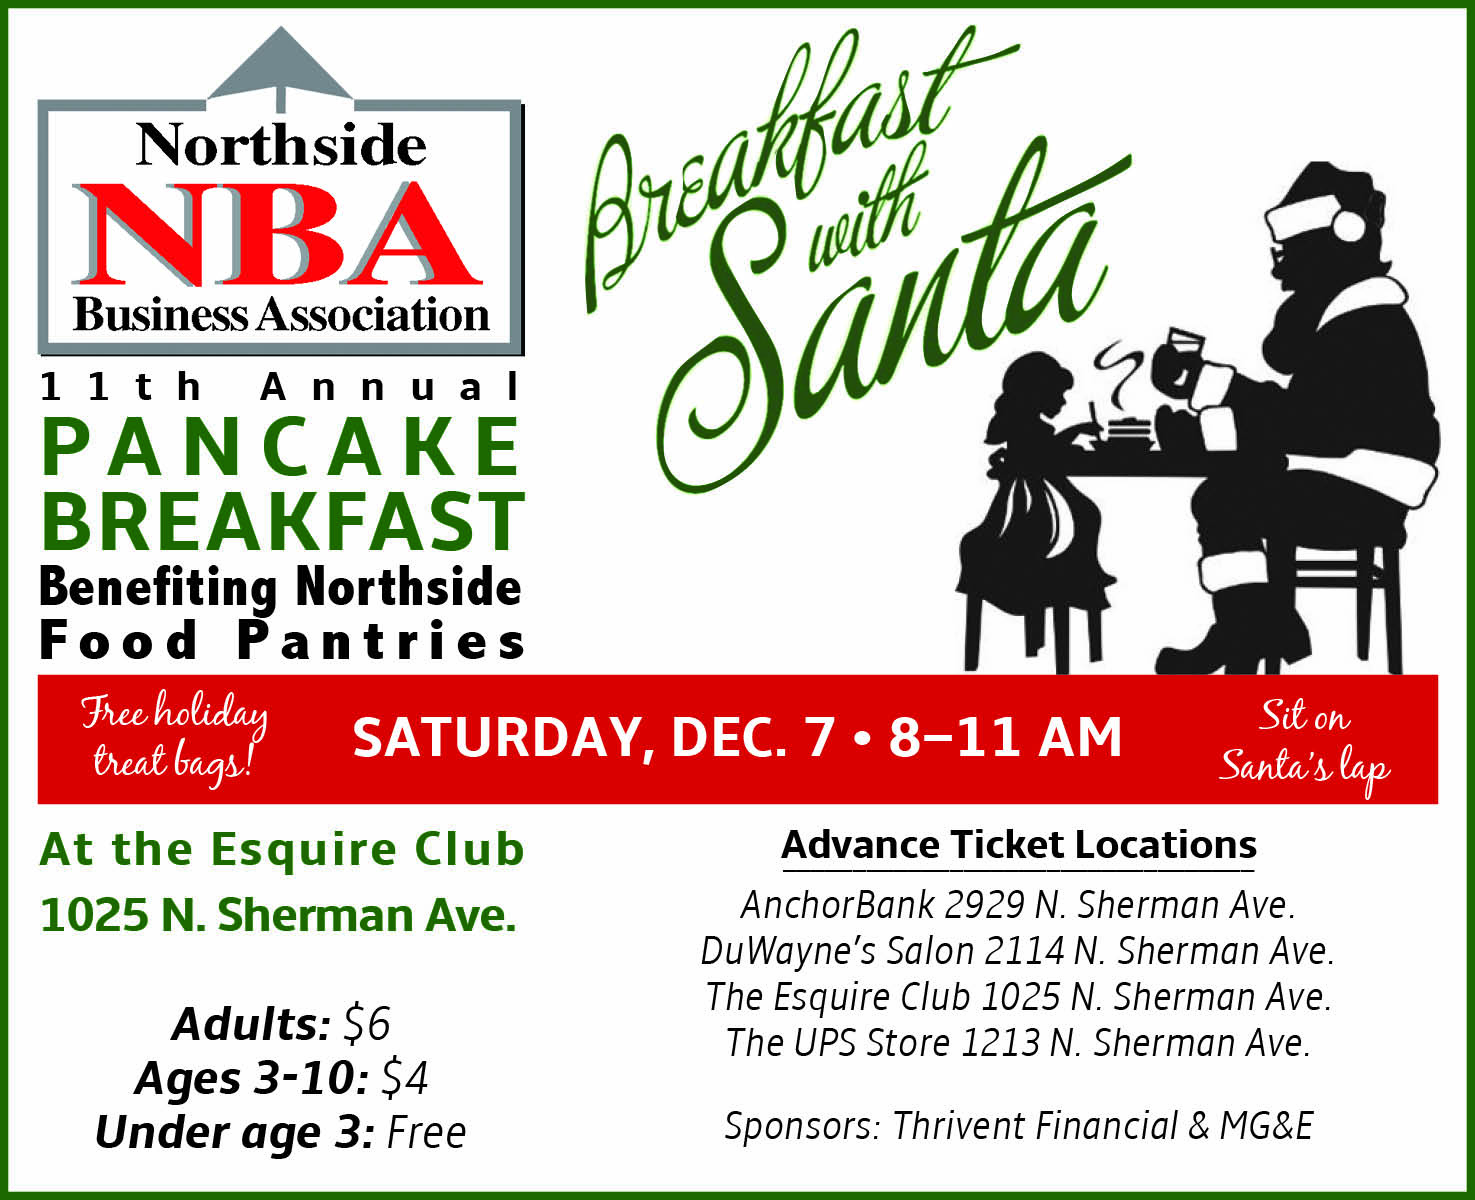 NBA_BreakfastSanta_AD_12-13